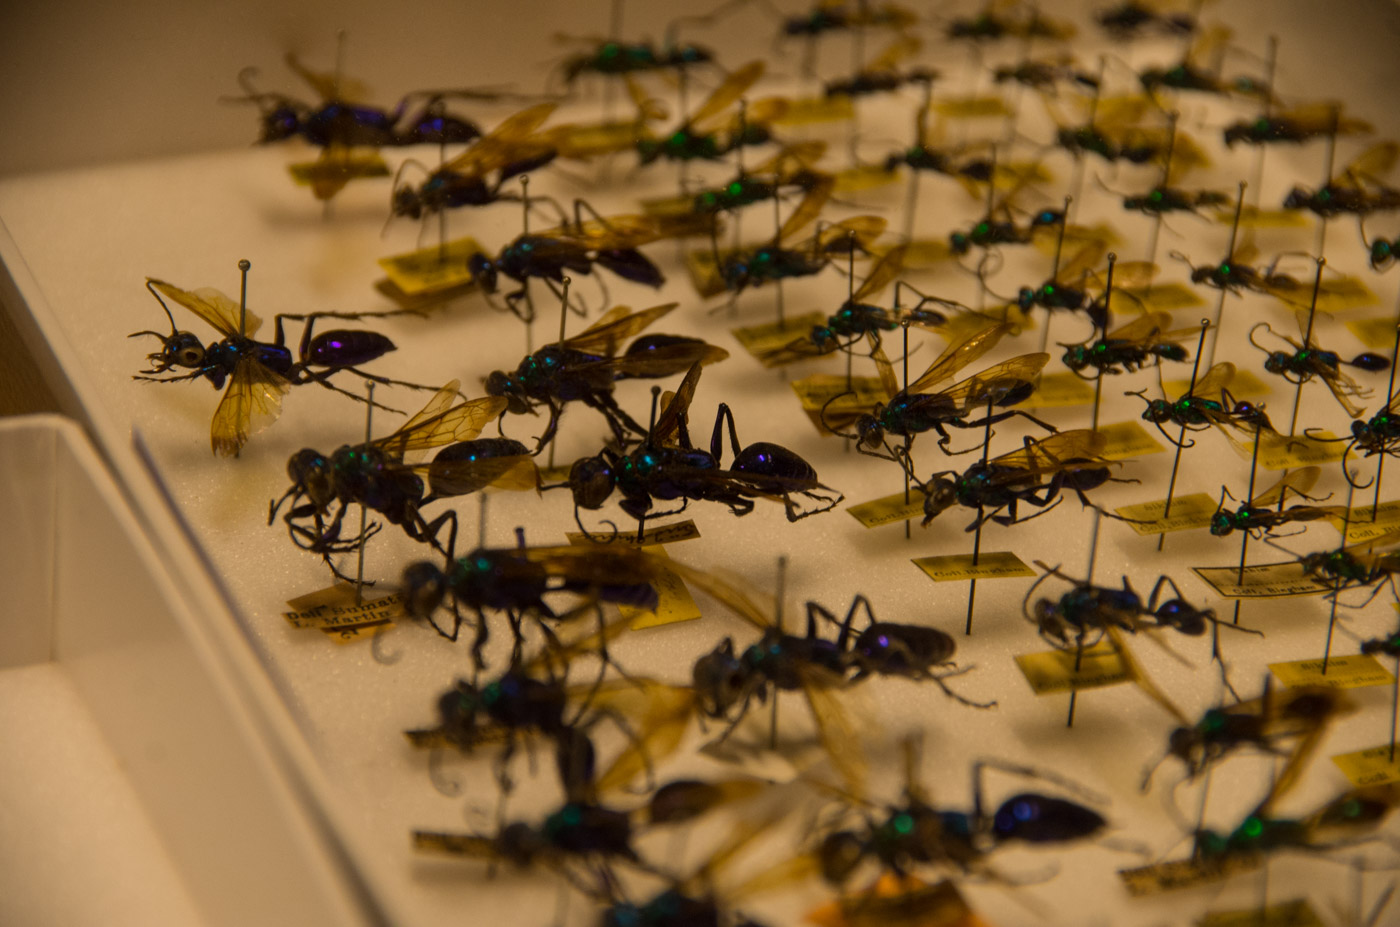 New video: Inside Berlin's Museum for Natural History